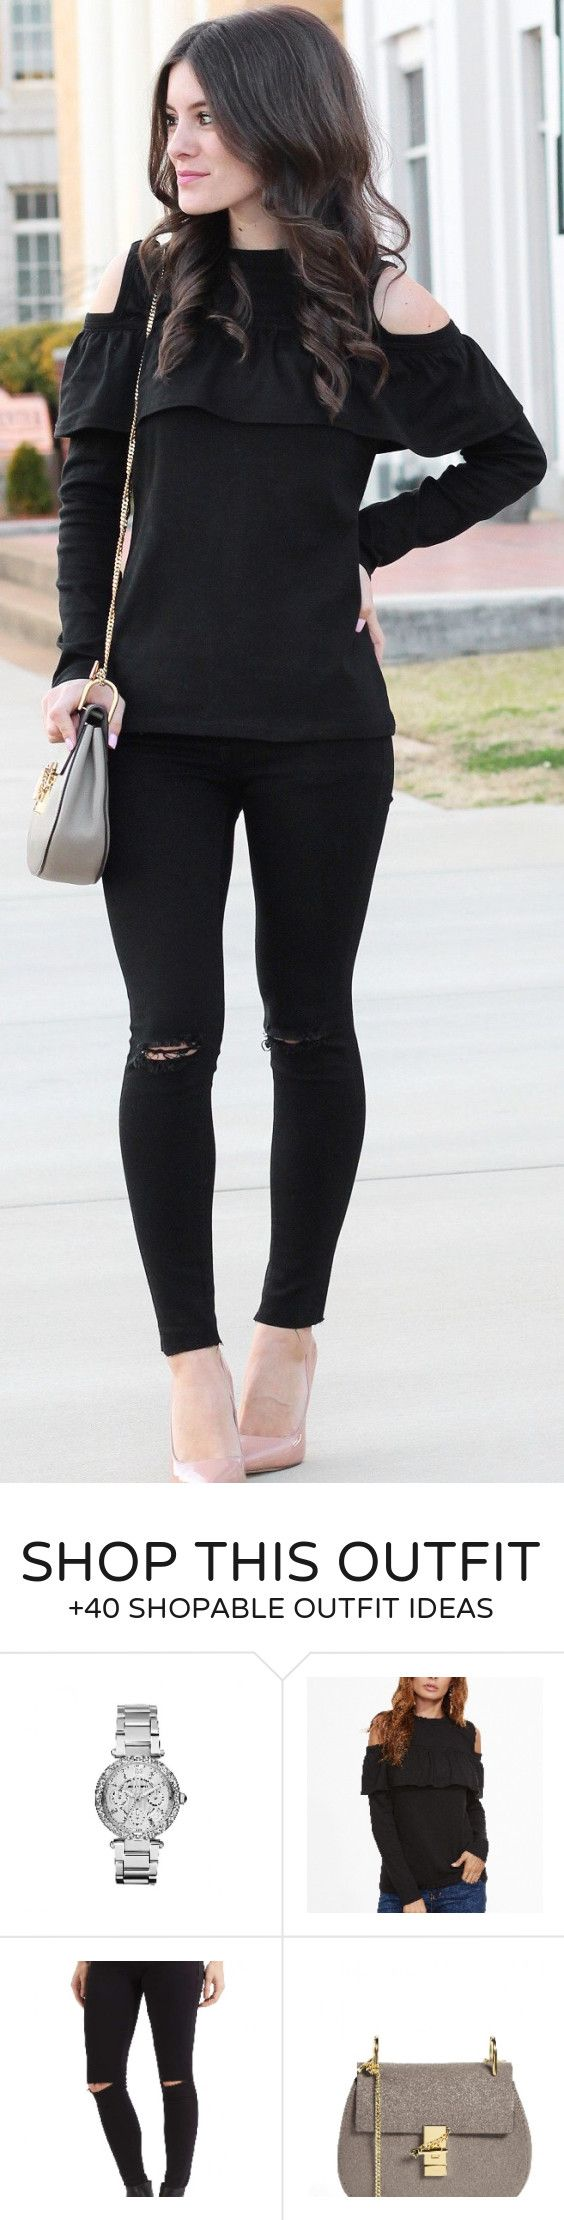 #winter #fashion /  Black Open Shoulder Knit / Nude Pumps / Rippped Skinny Jeans